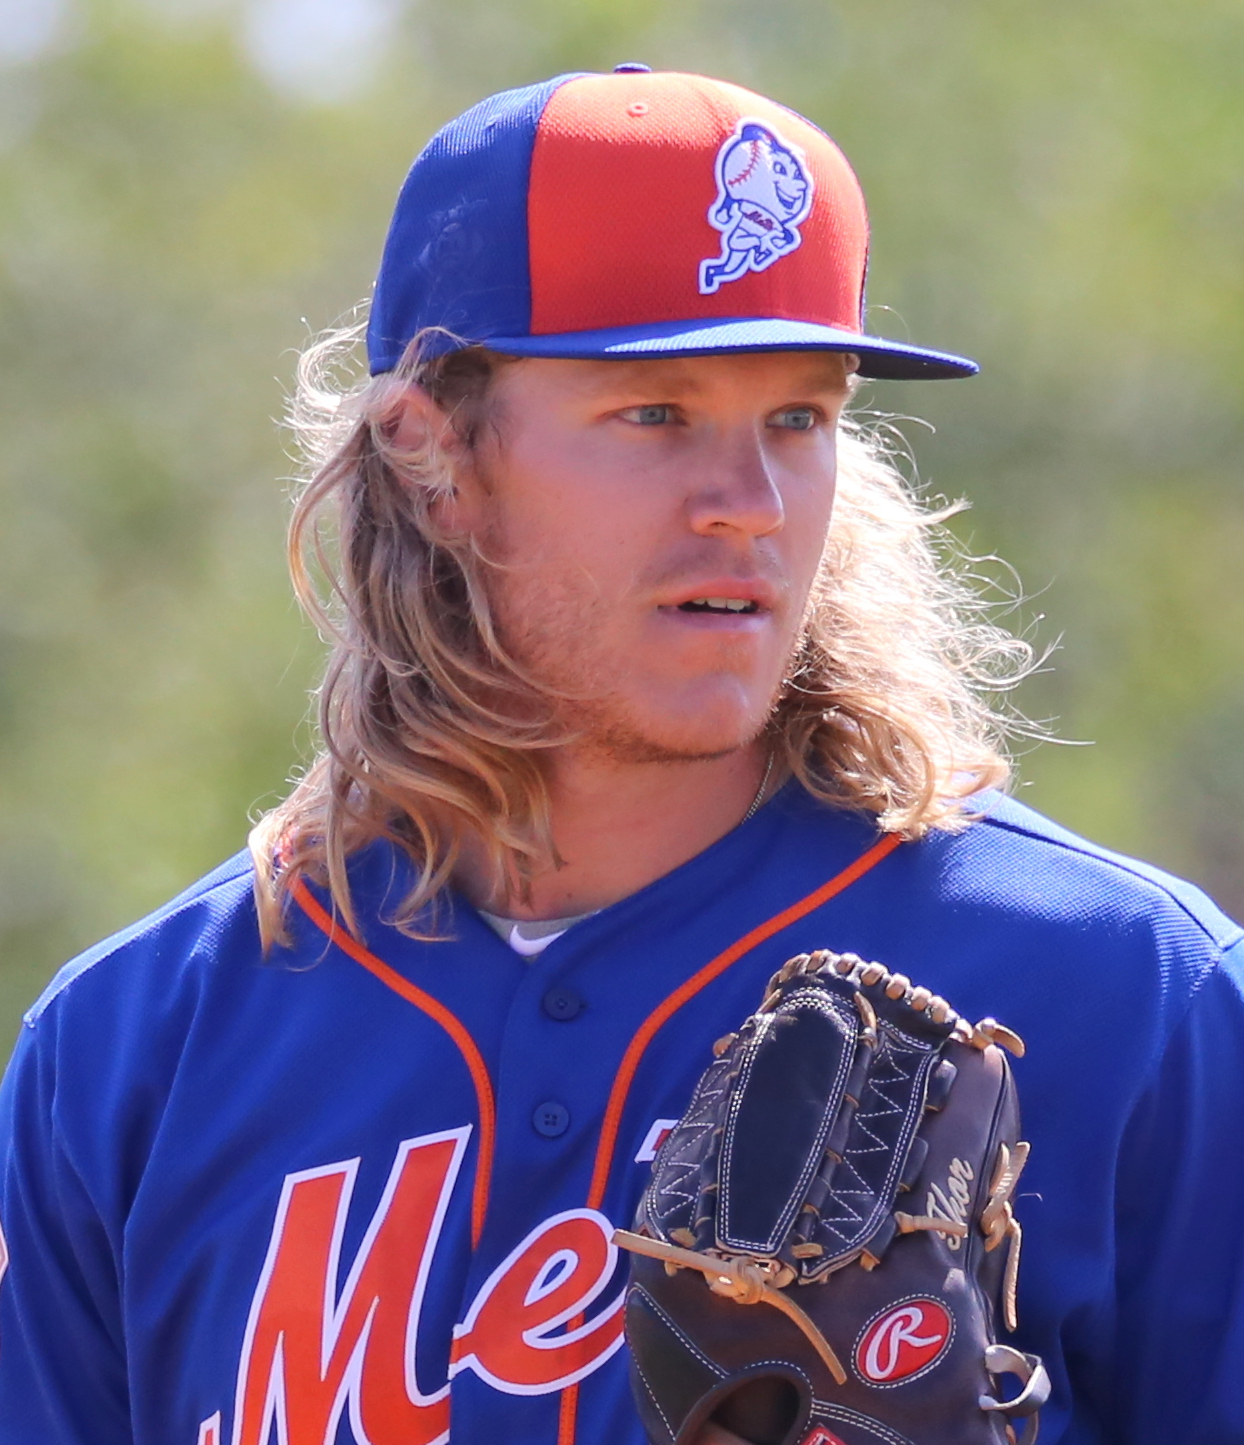 August 16, 2019 -- The Mets are predicted to beat the Royals on the road. The Mets top hitter is Pete Alonso and projected starting pitcher is Noah Syndergaard.